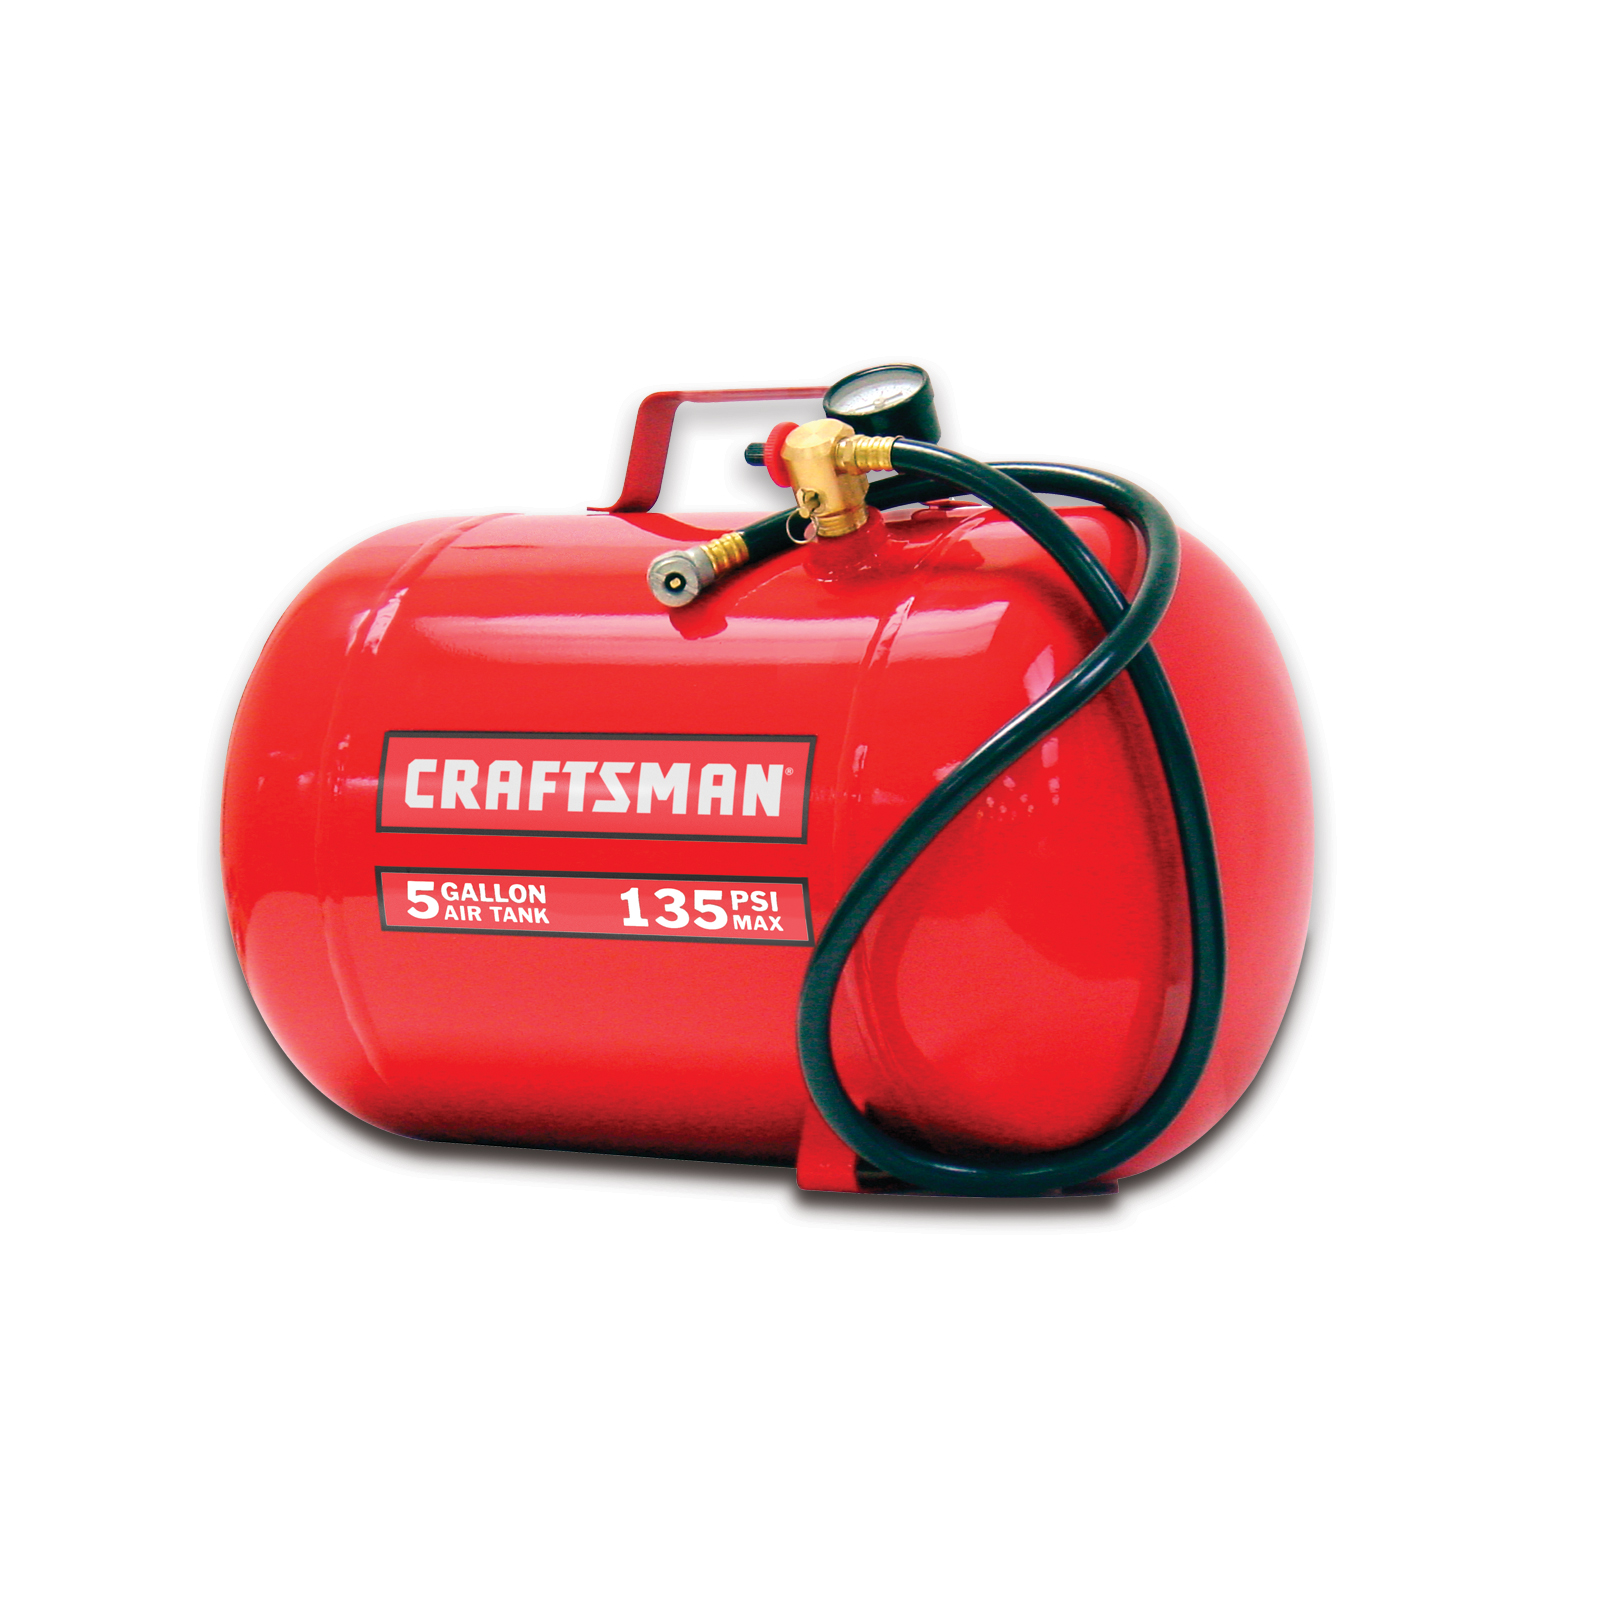 Craftsman 5 gal. Horizontal Air Tank